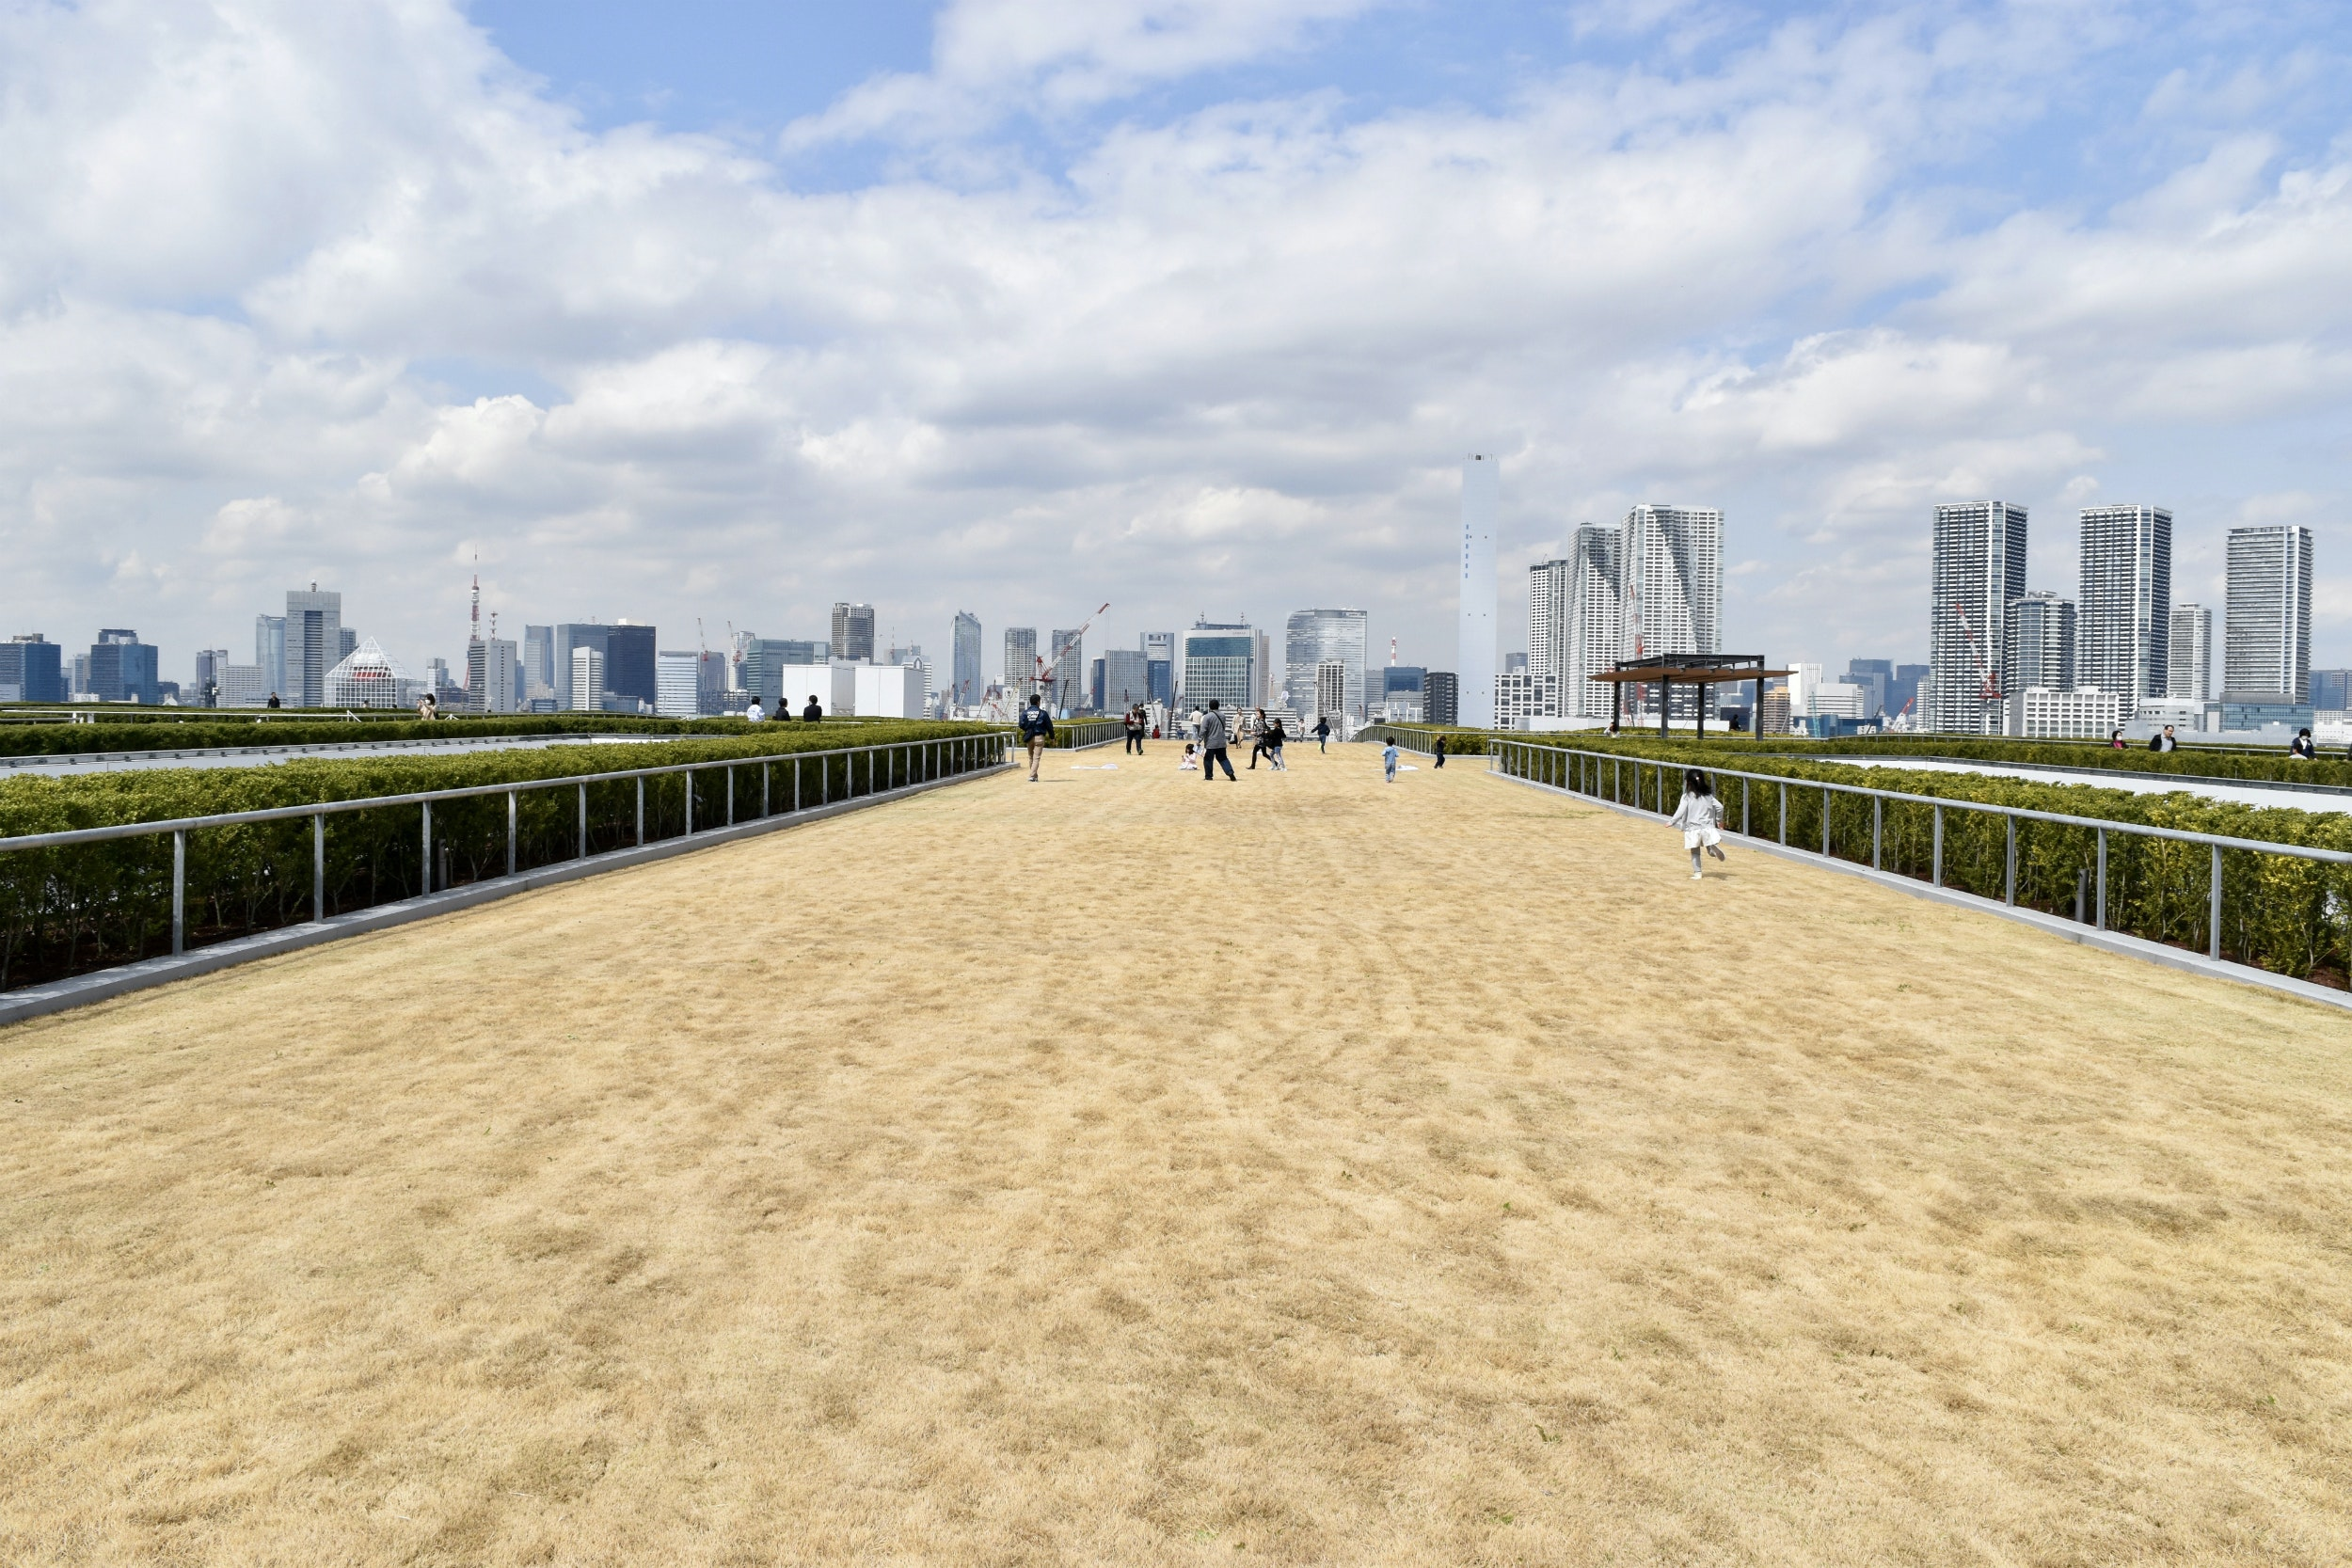 A spacious rooftop garden area at Toyosu Market features landscaping and nice views out onto Tokyo Bay and the city.